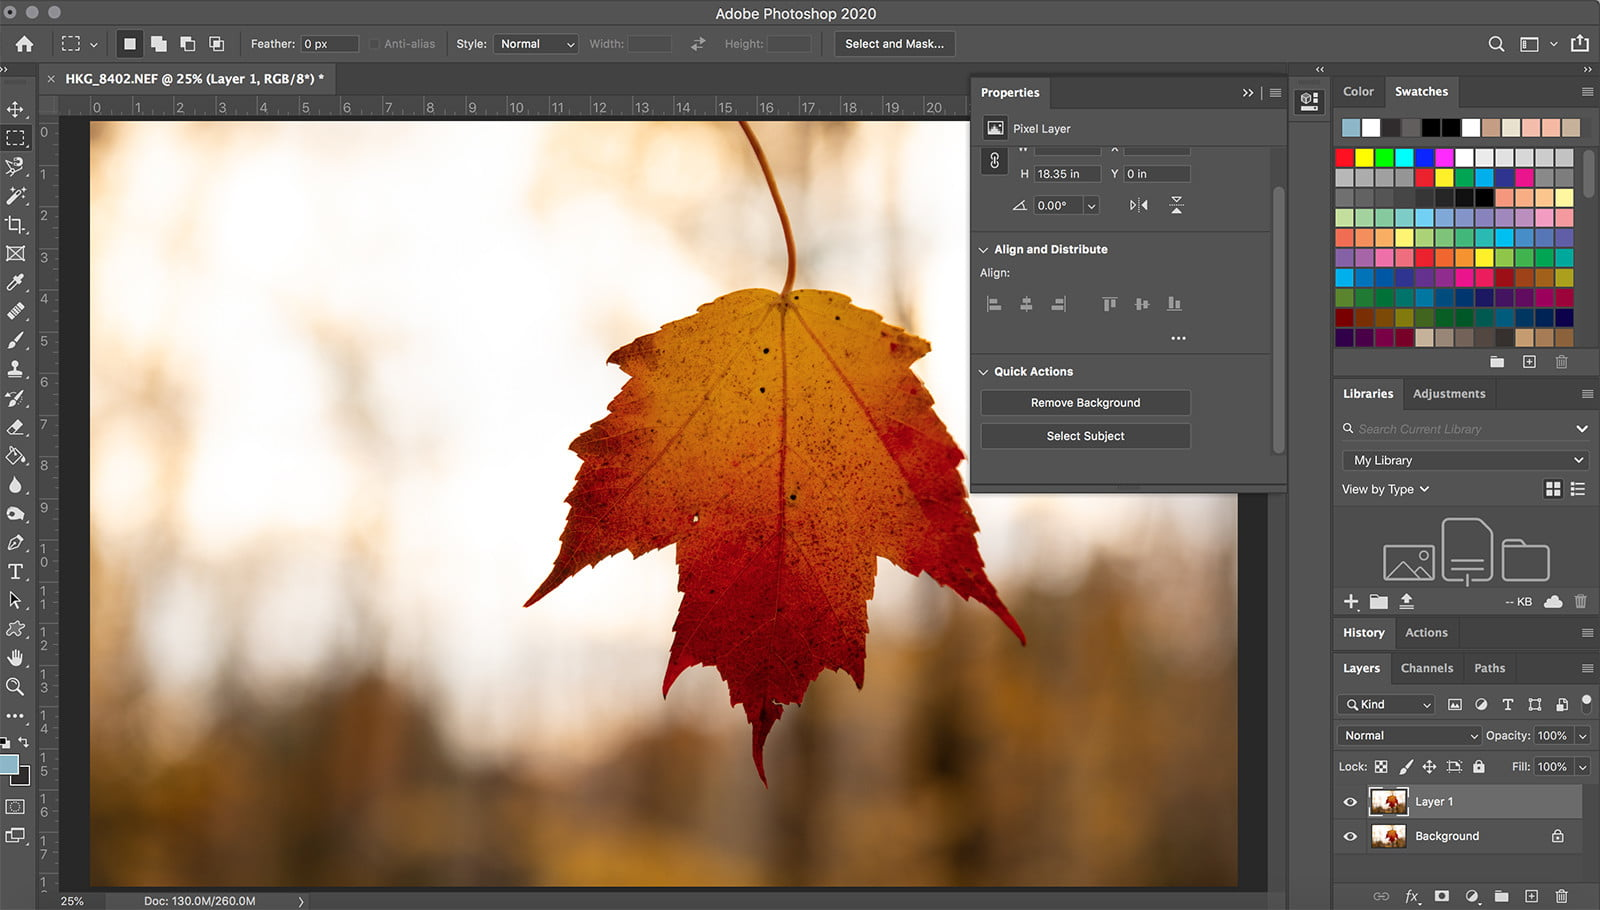 How To Make A Background Transparent In Photoshop